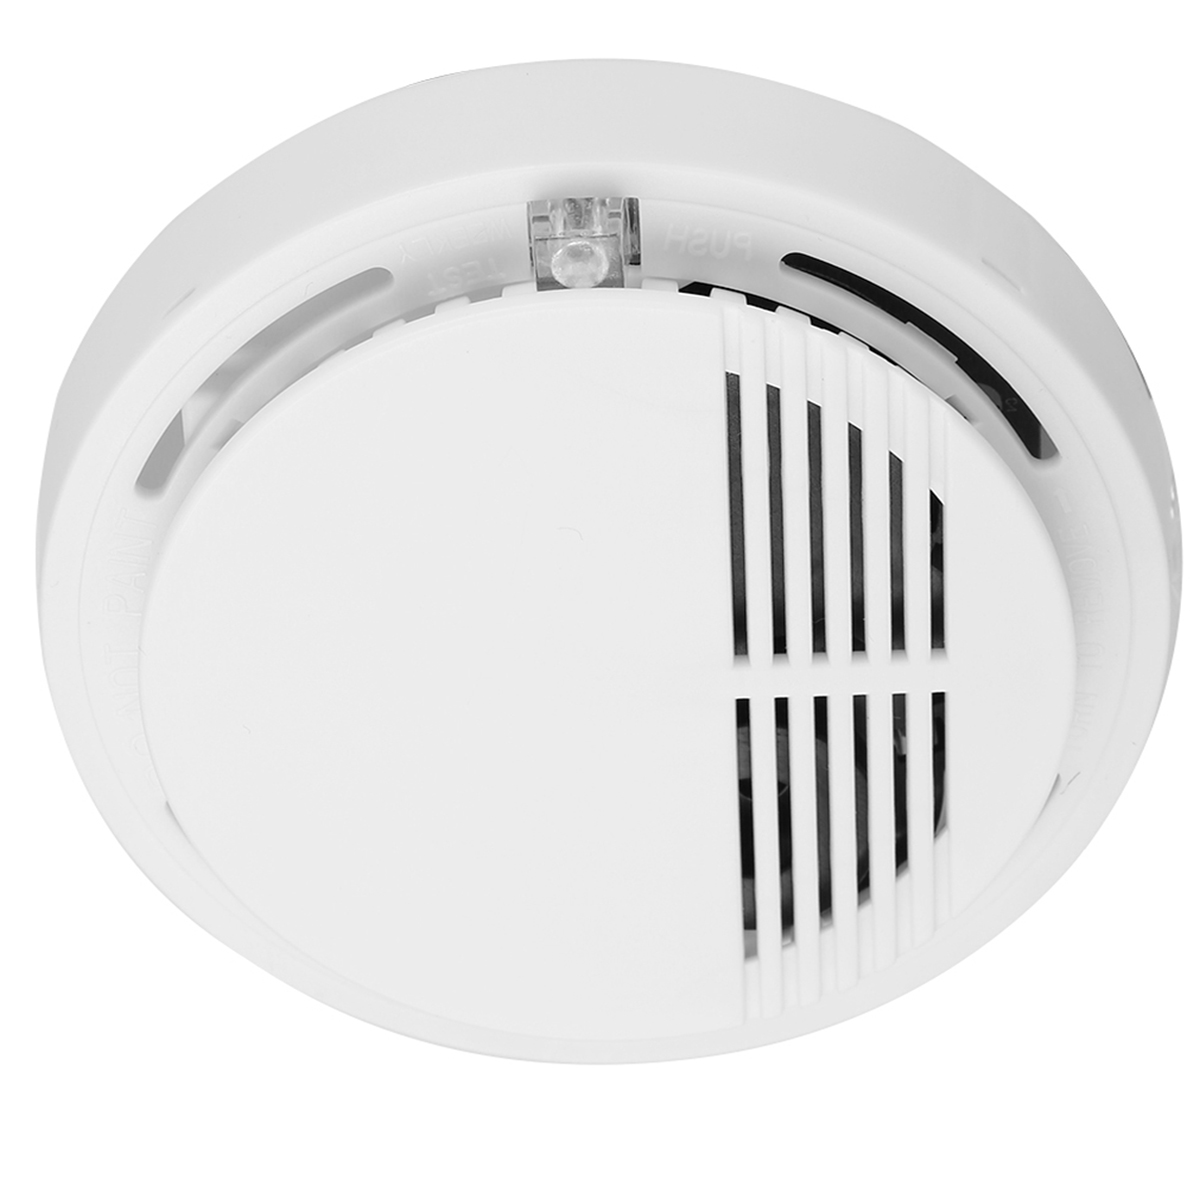 Photoelectric Independent Smoke Detector Smoke Fire Sensitive Alarm Sensor 80db Home Security Wireless Fire Alarm Equipment